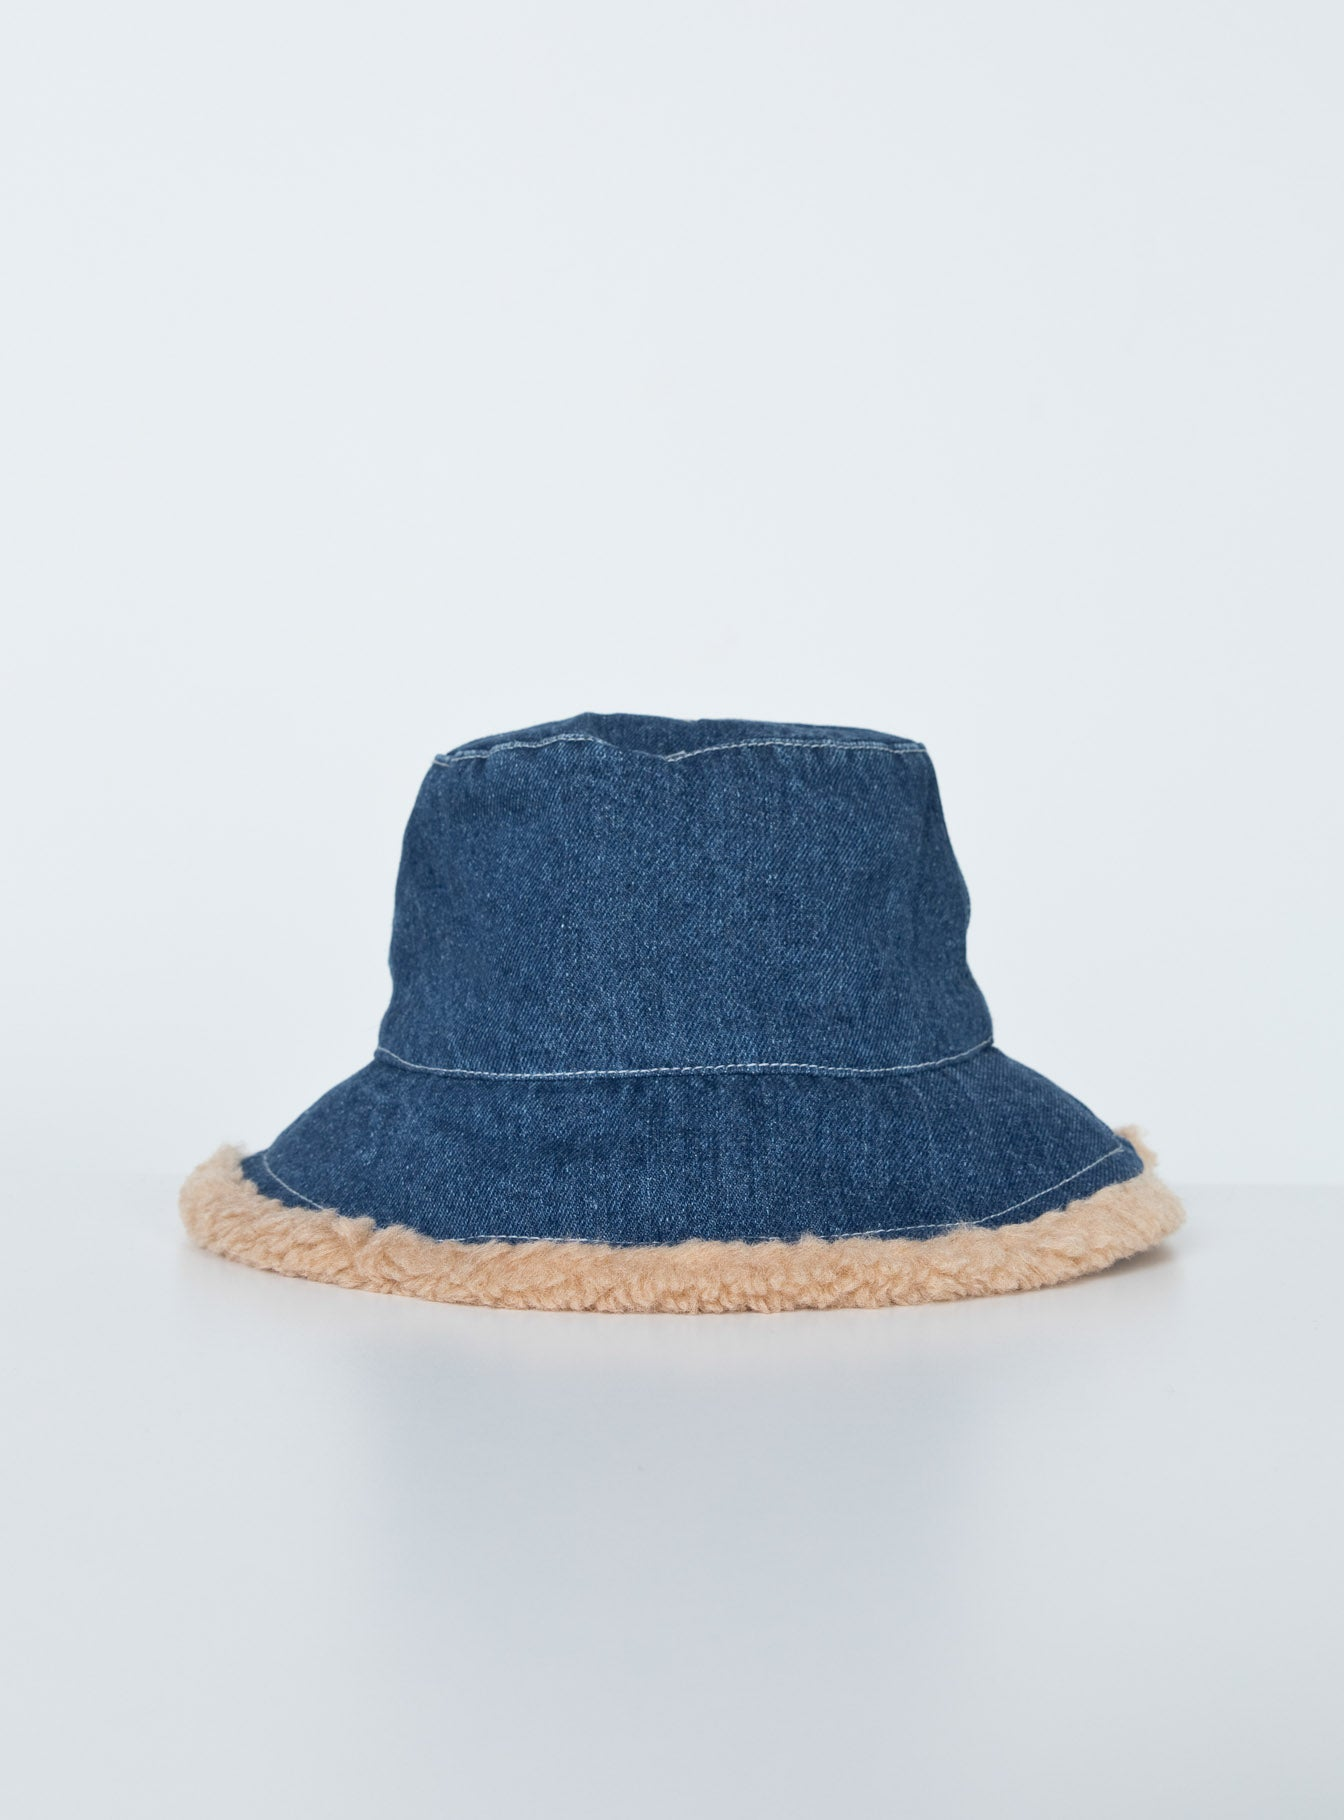 Roxy Denim Shearling Bucket Hat